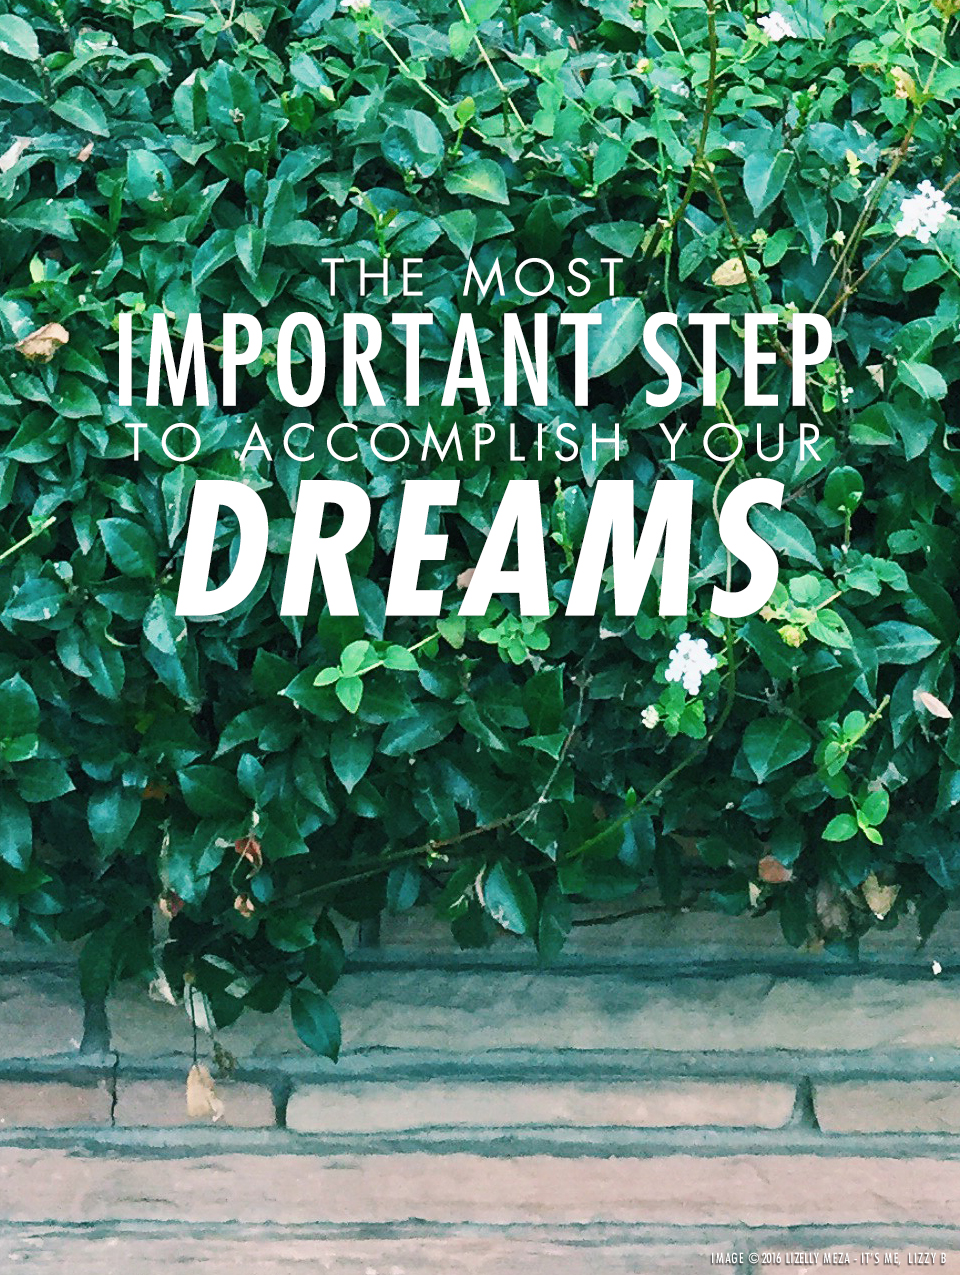 The Most Important Step to Accomplish Your Dreams // It's Me, Lizzy B - Musings on Life, Business, & The Pursuit of Everyday Joy // Personal blog of Lizelly Meza from Lizzy B Loves